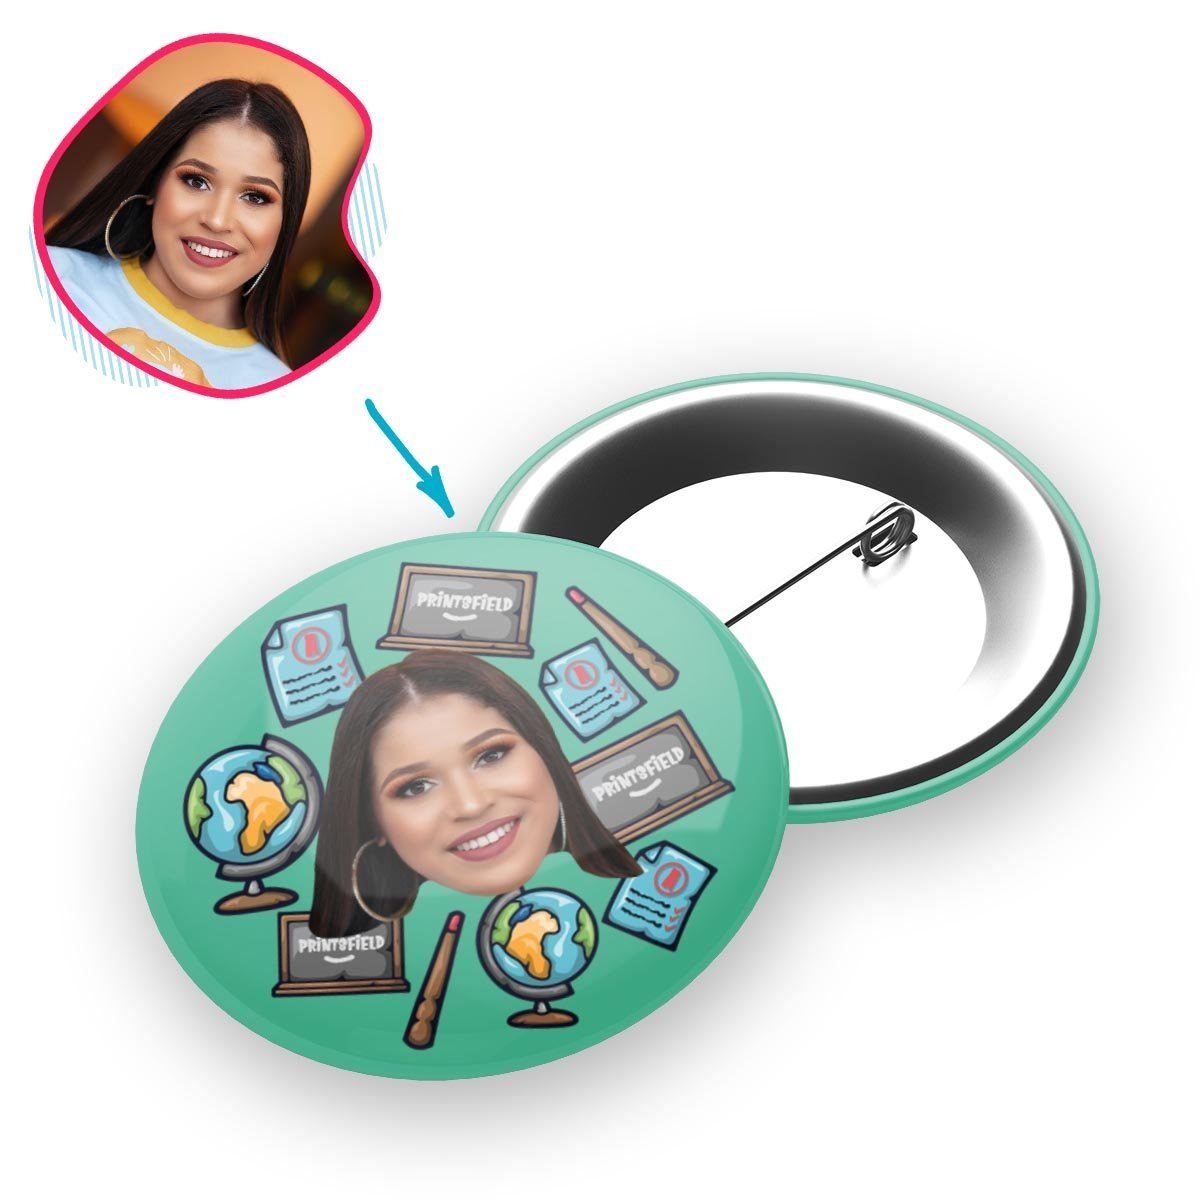 Mint Teacher personalized pin with photo of face printed on it